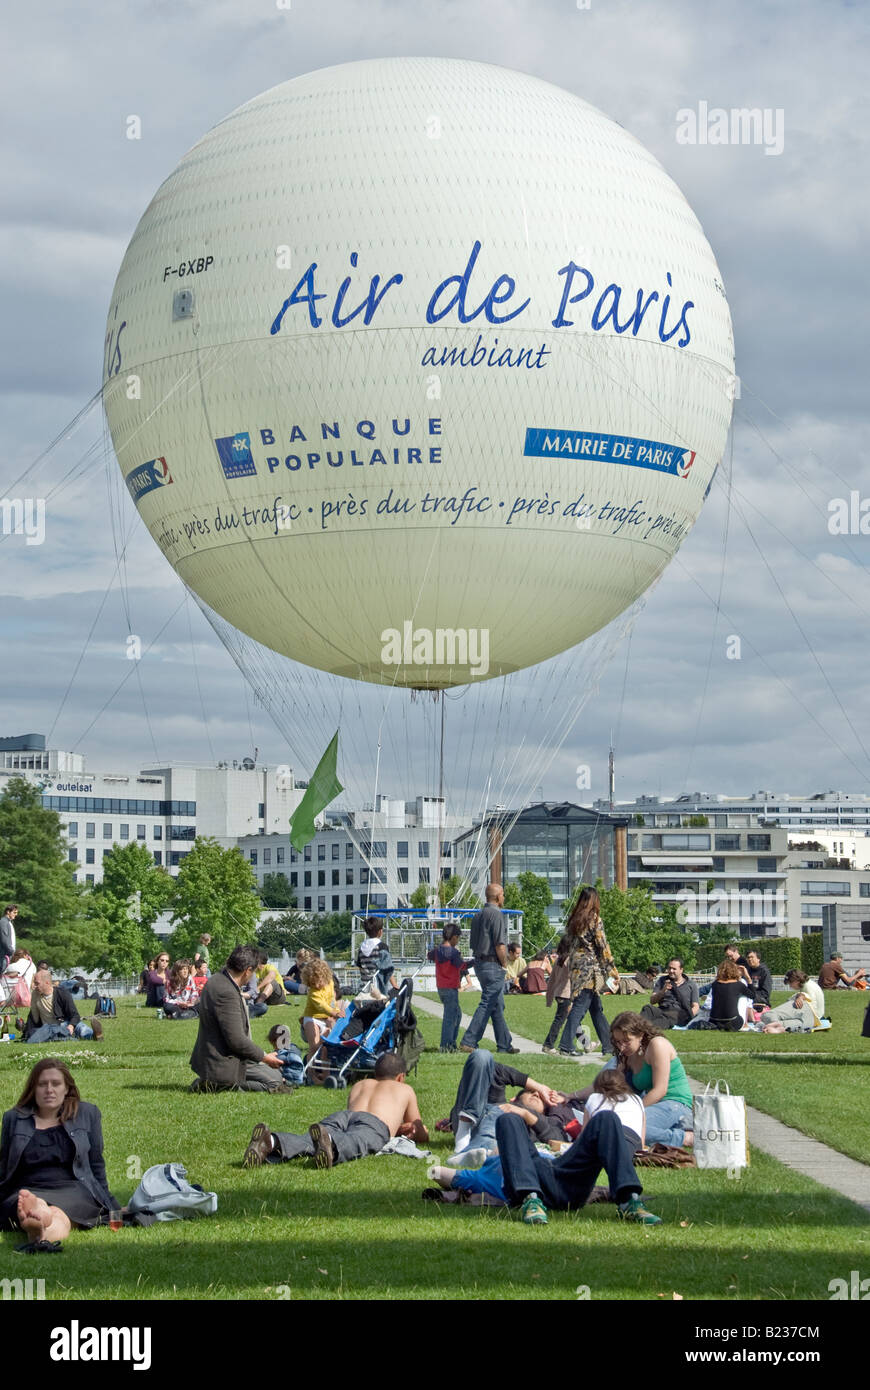 Paris France, People relaxing in the garden, 'André Citro-en Parc' Helium Balloon, Urban Playground, - Stock Image